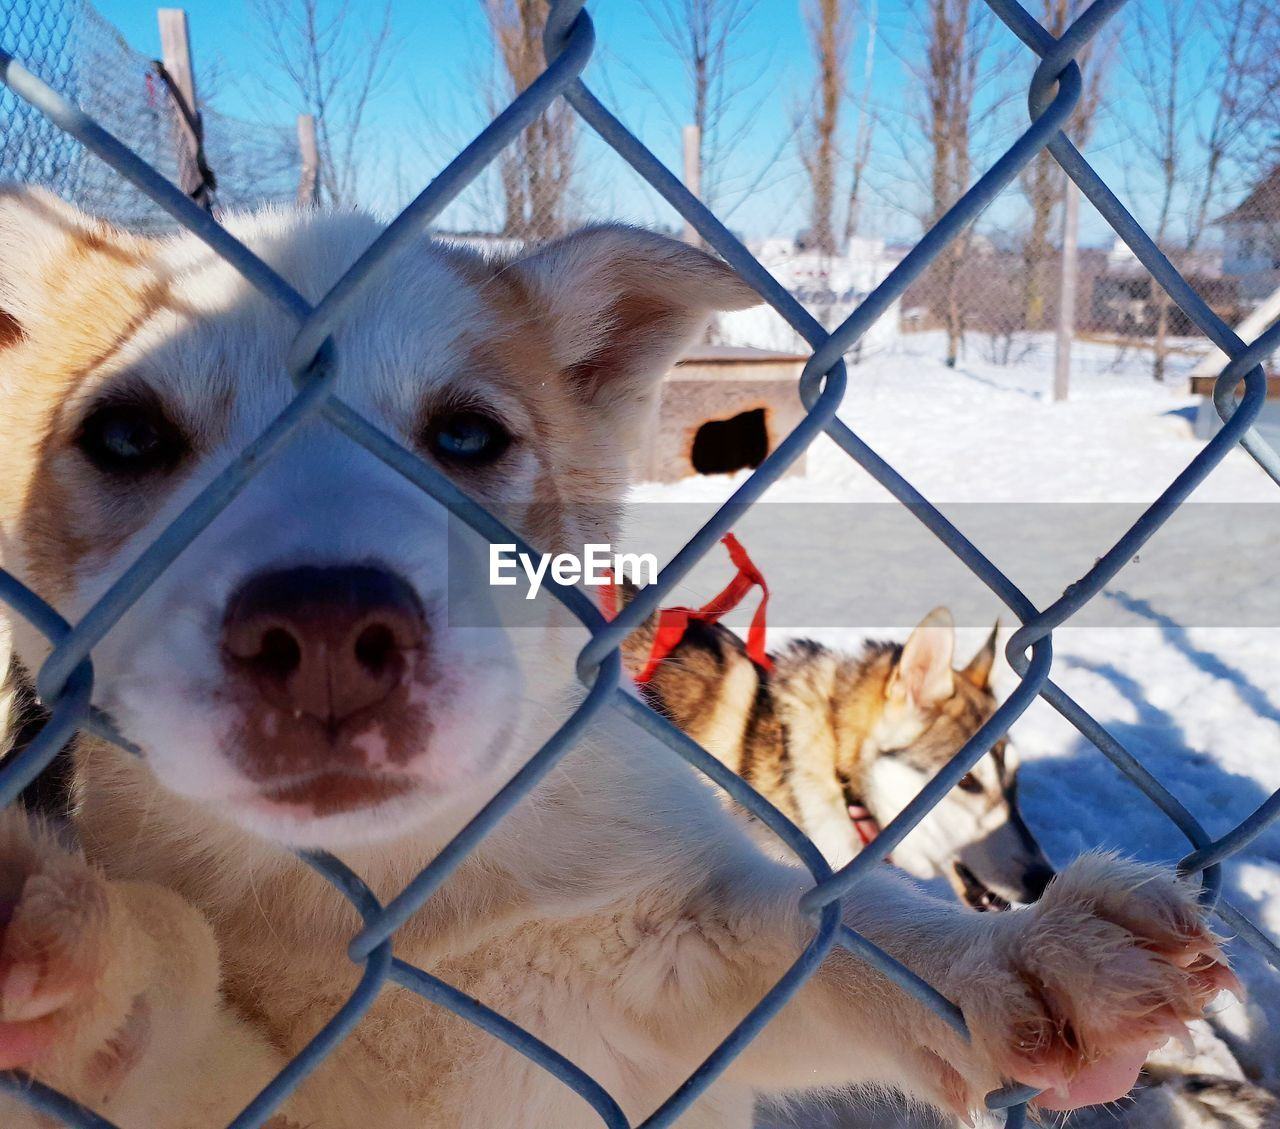 mammal, animal themes, domestic, domestic animals, pets, dog, canine, animal, one animal, vertebrate, fence, barrier, boundary, chainlink fence, day, close-up, no people, nature, sled dog